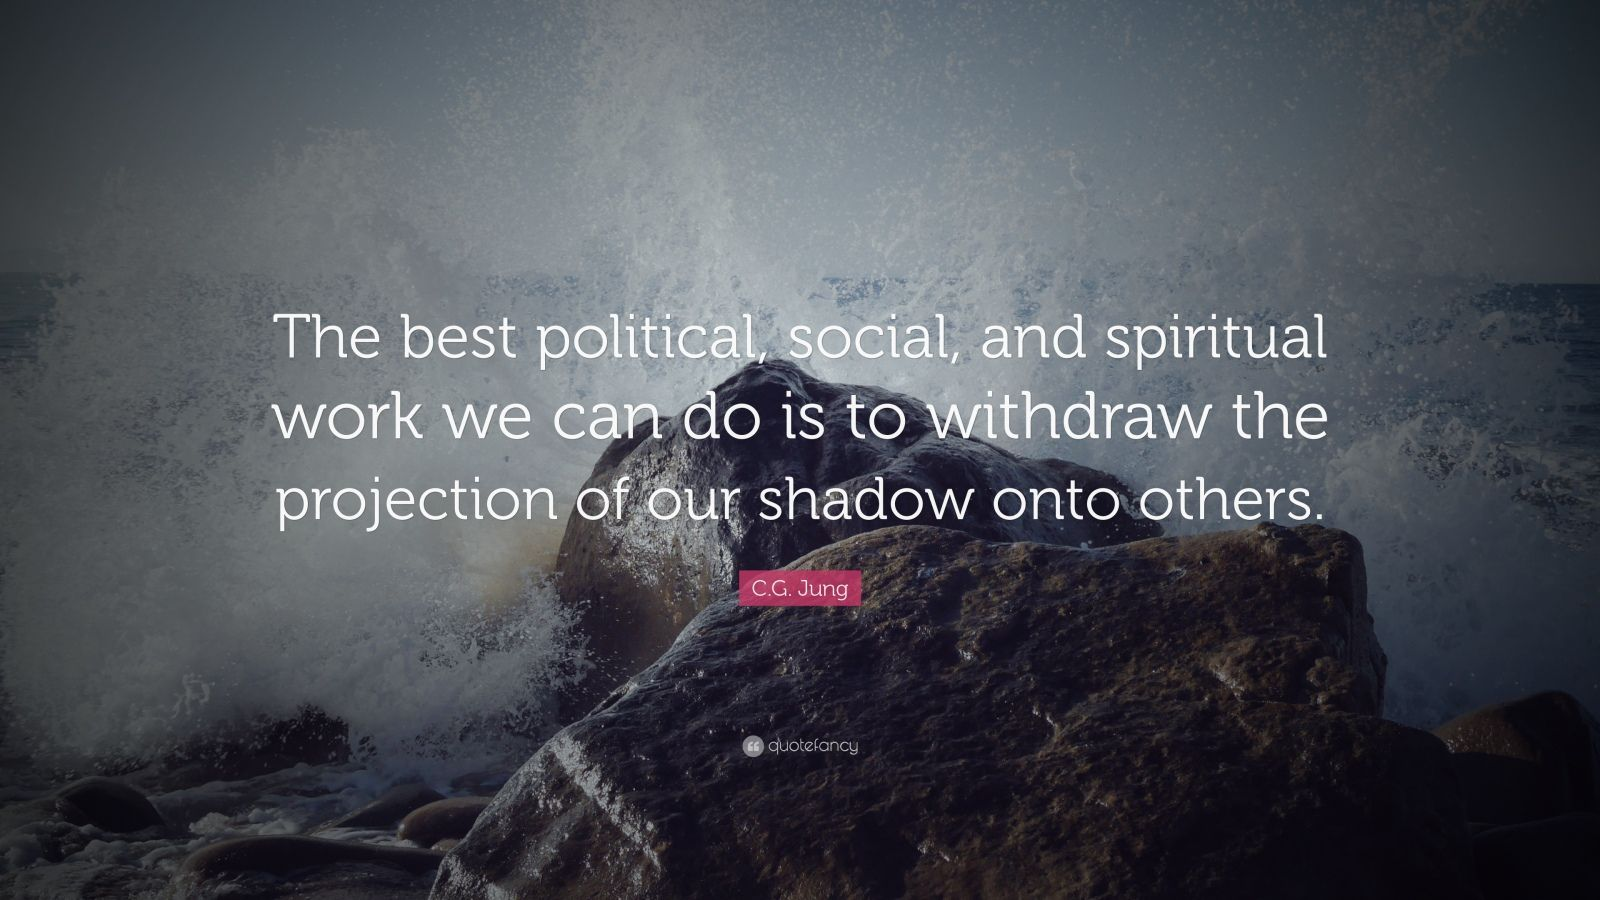 """C.G. Jung Quote: """"The best political, social, and spiritual work we can do is to withdraw the projection of our shadow onto others."""""""